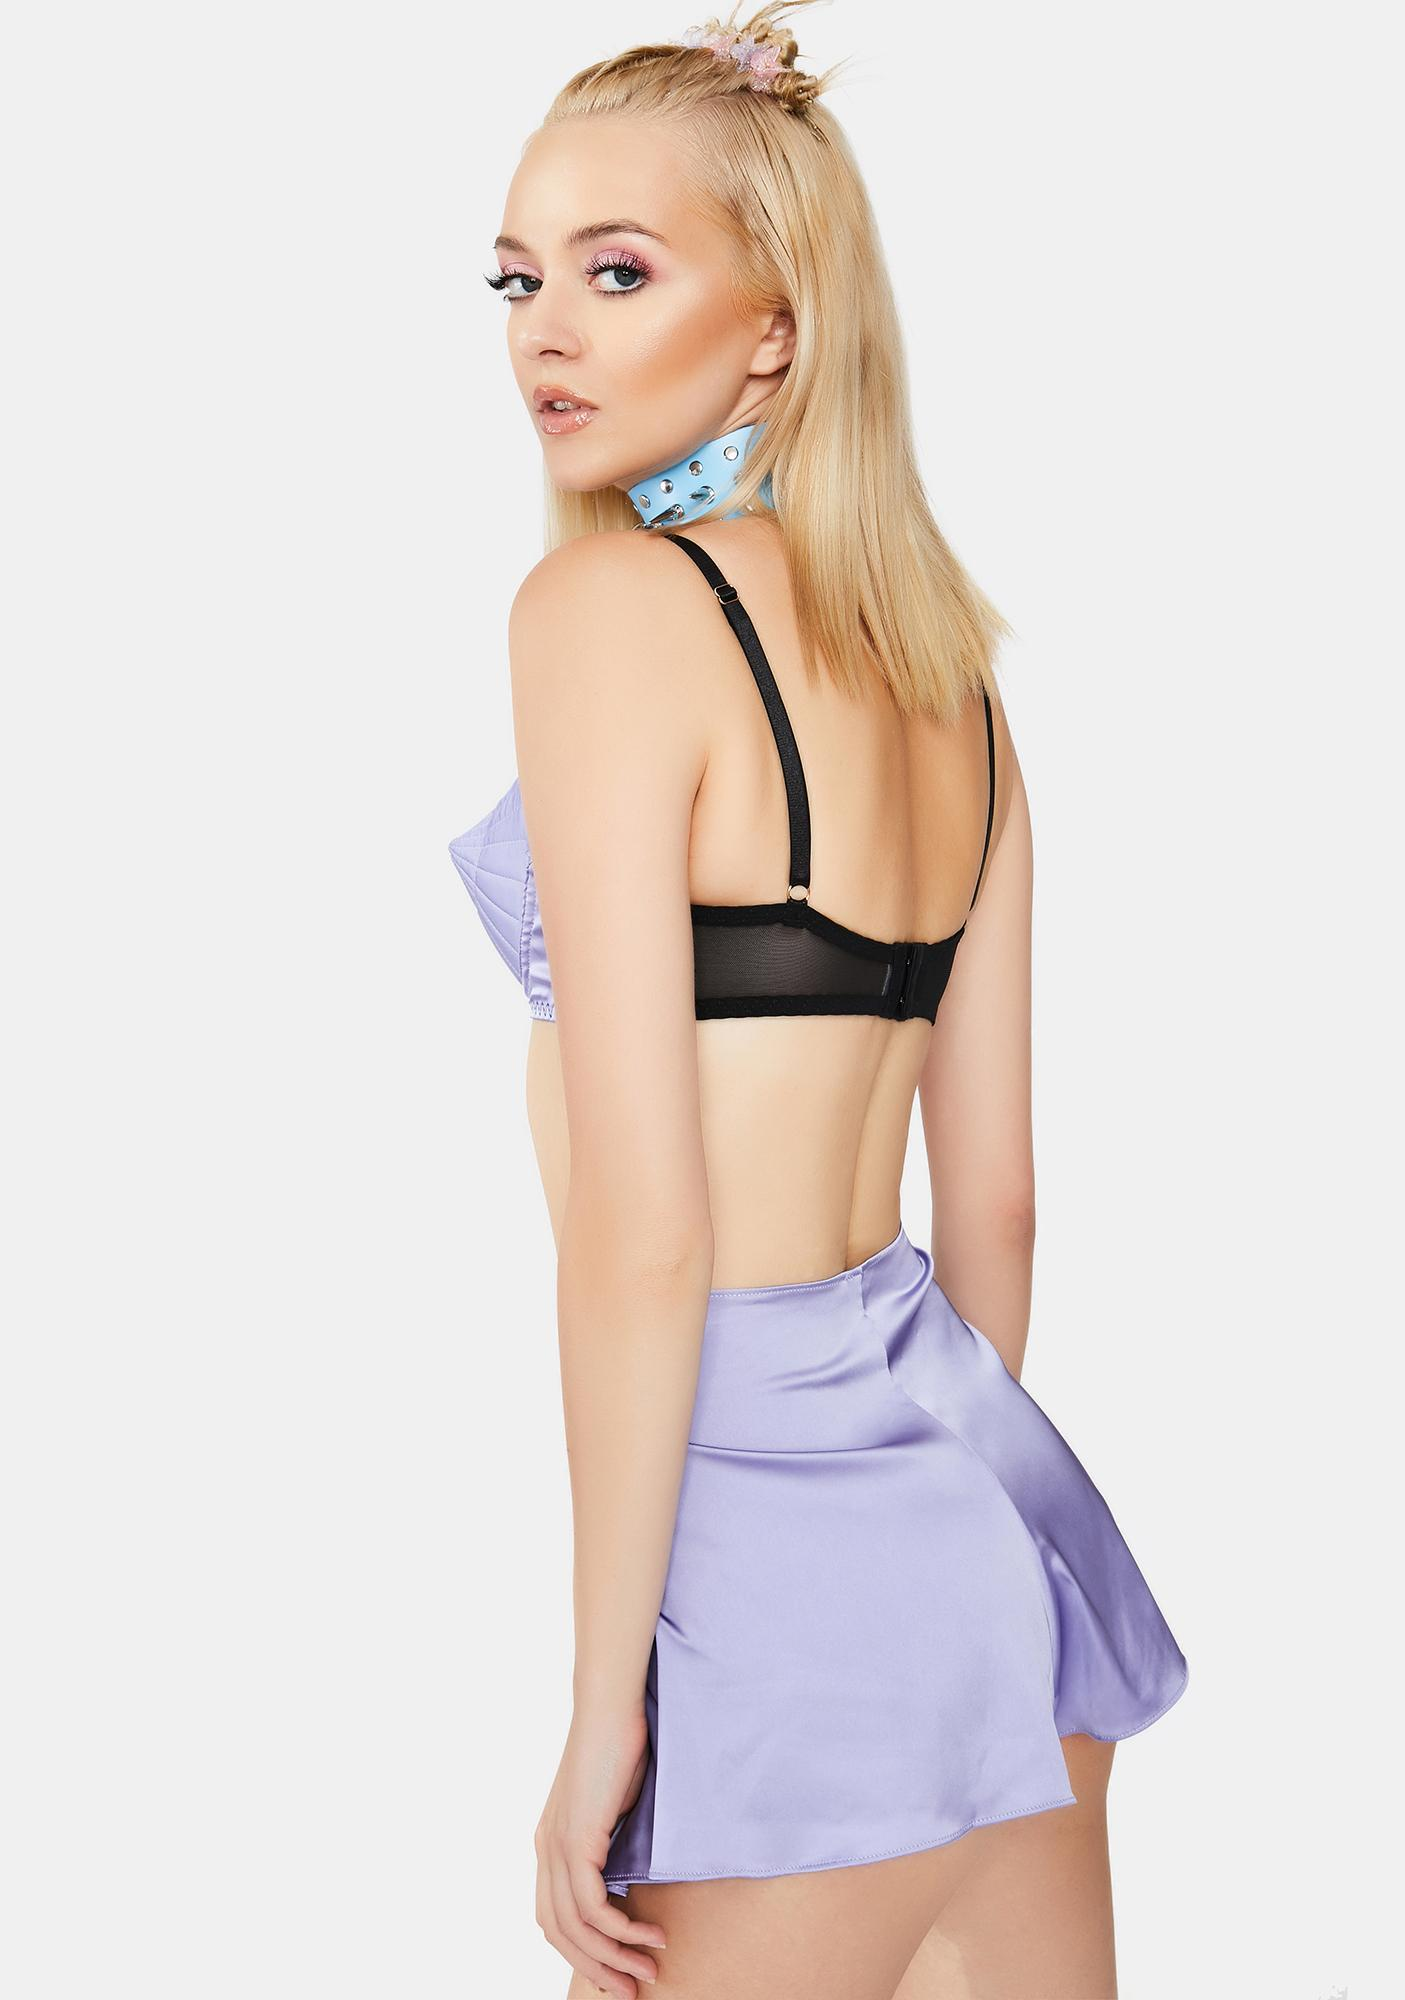 Playful Promises X Bettie Page Lilac Retro Futuristic Bullet Bra